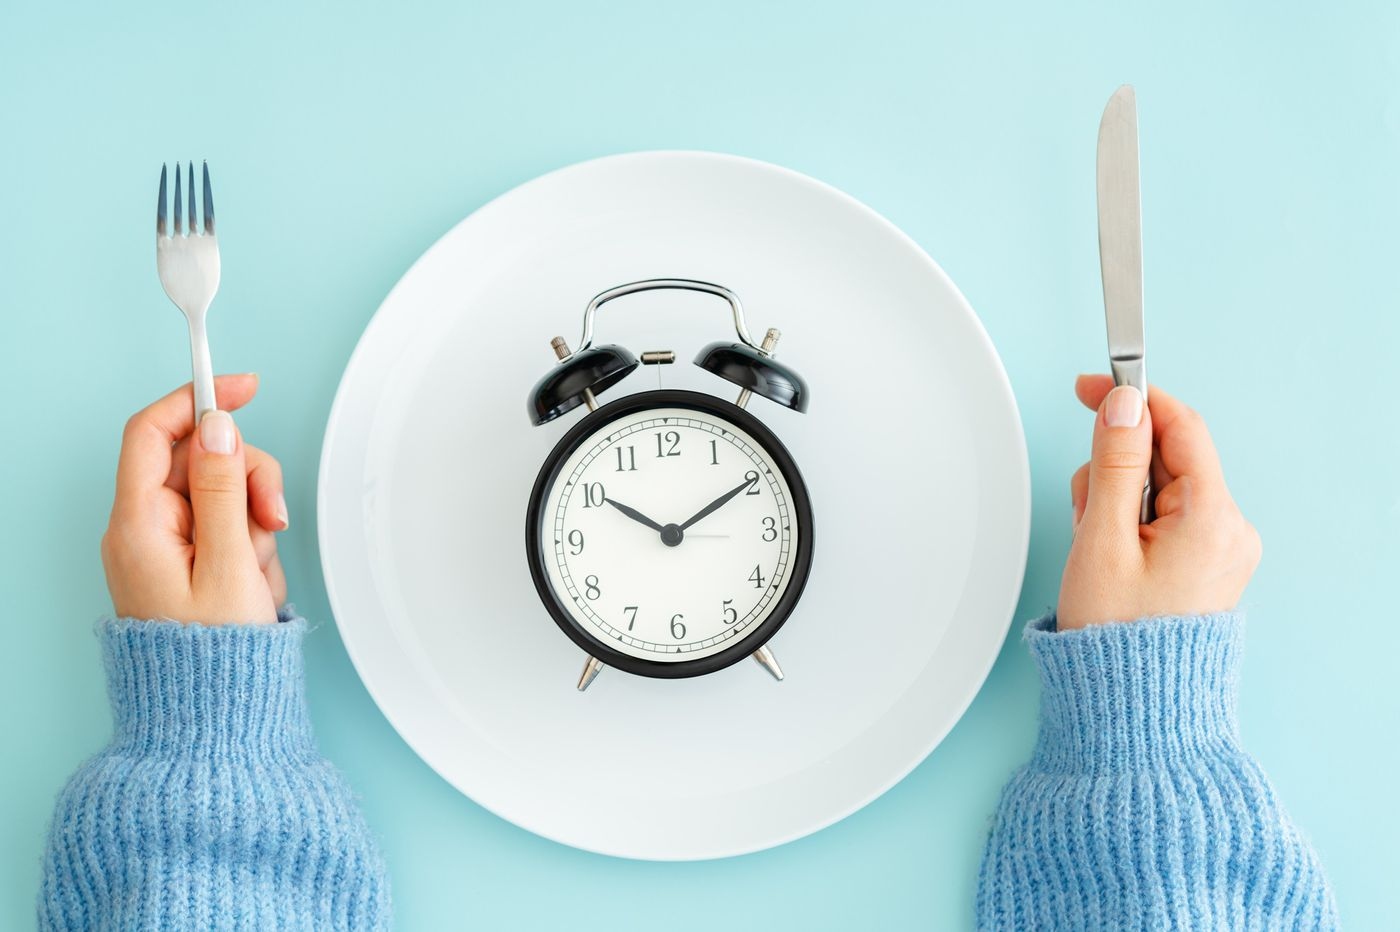 Intermittent fasting's benefits go beyond weight loss: 5 benefits and 5 ways to get started